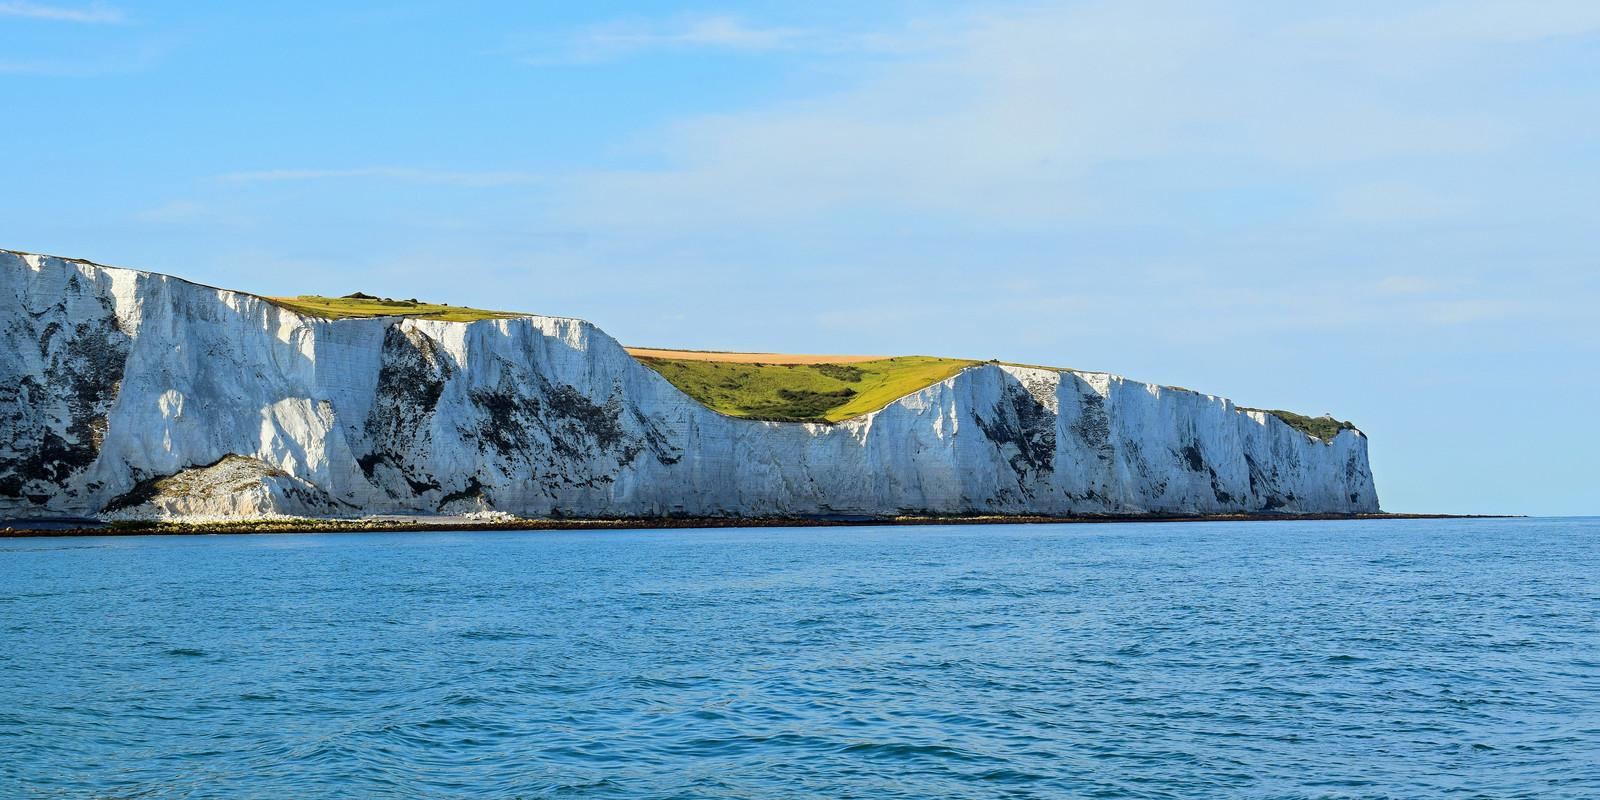 Experience your first crossing of the Channel and admire the white cliffs of the British coast